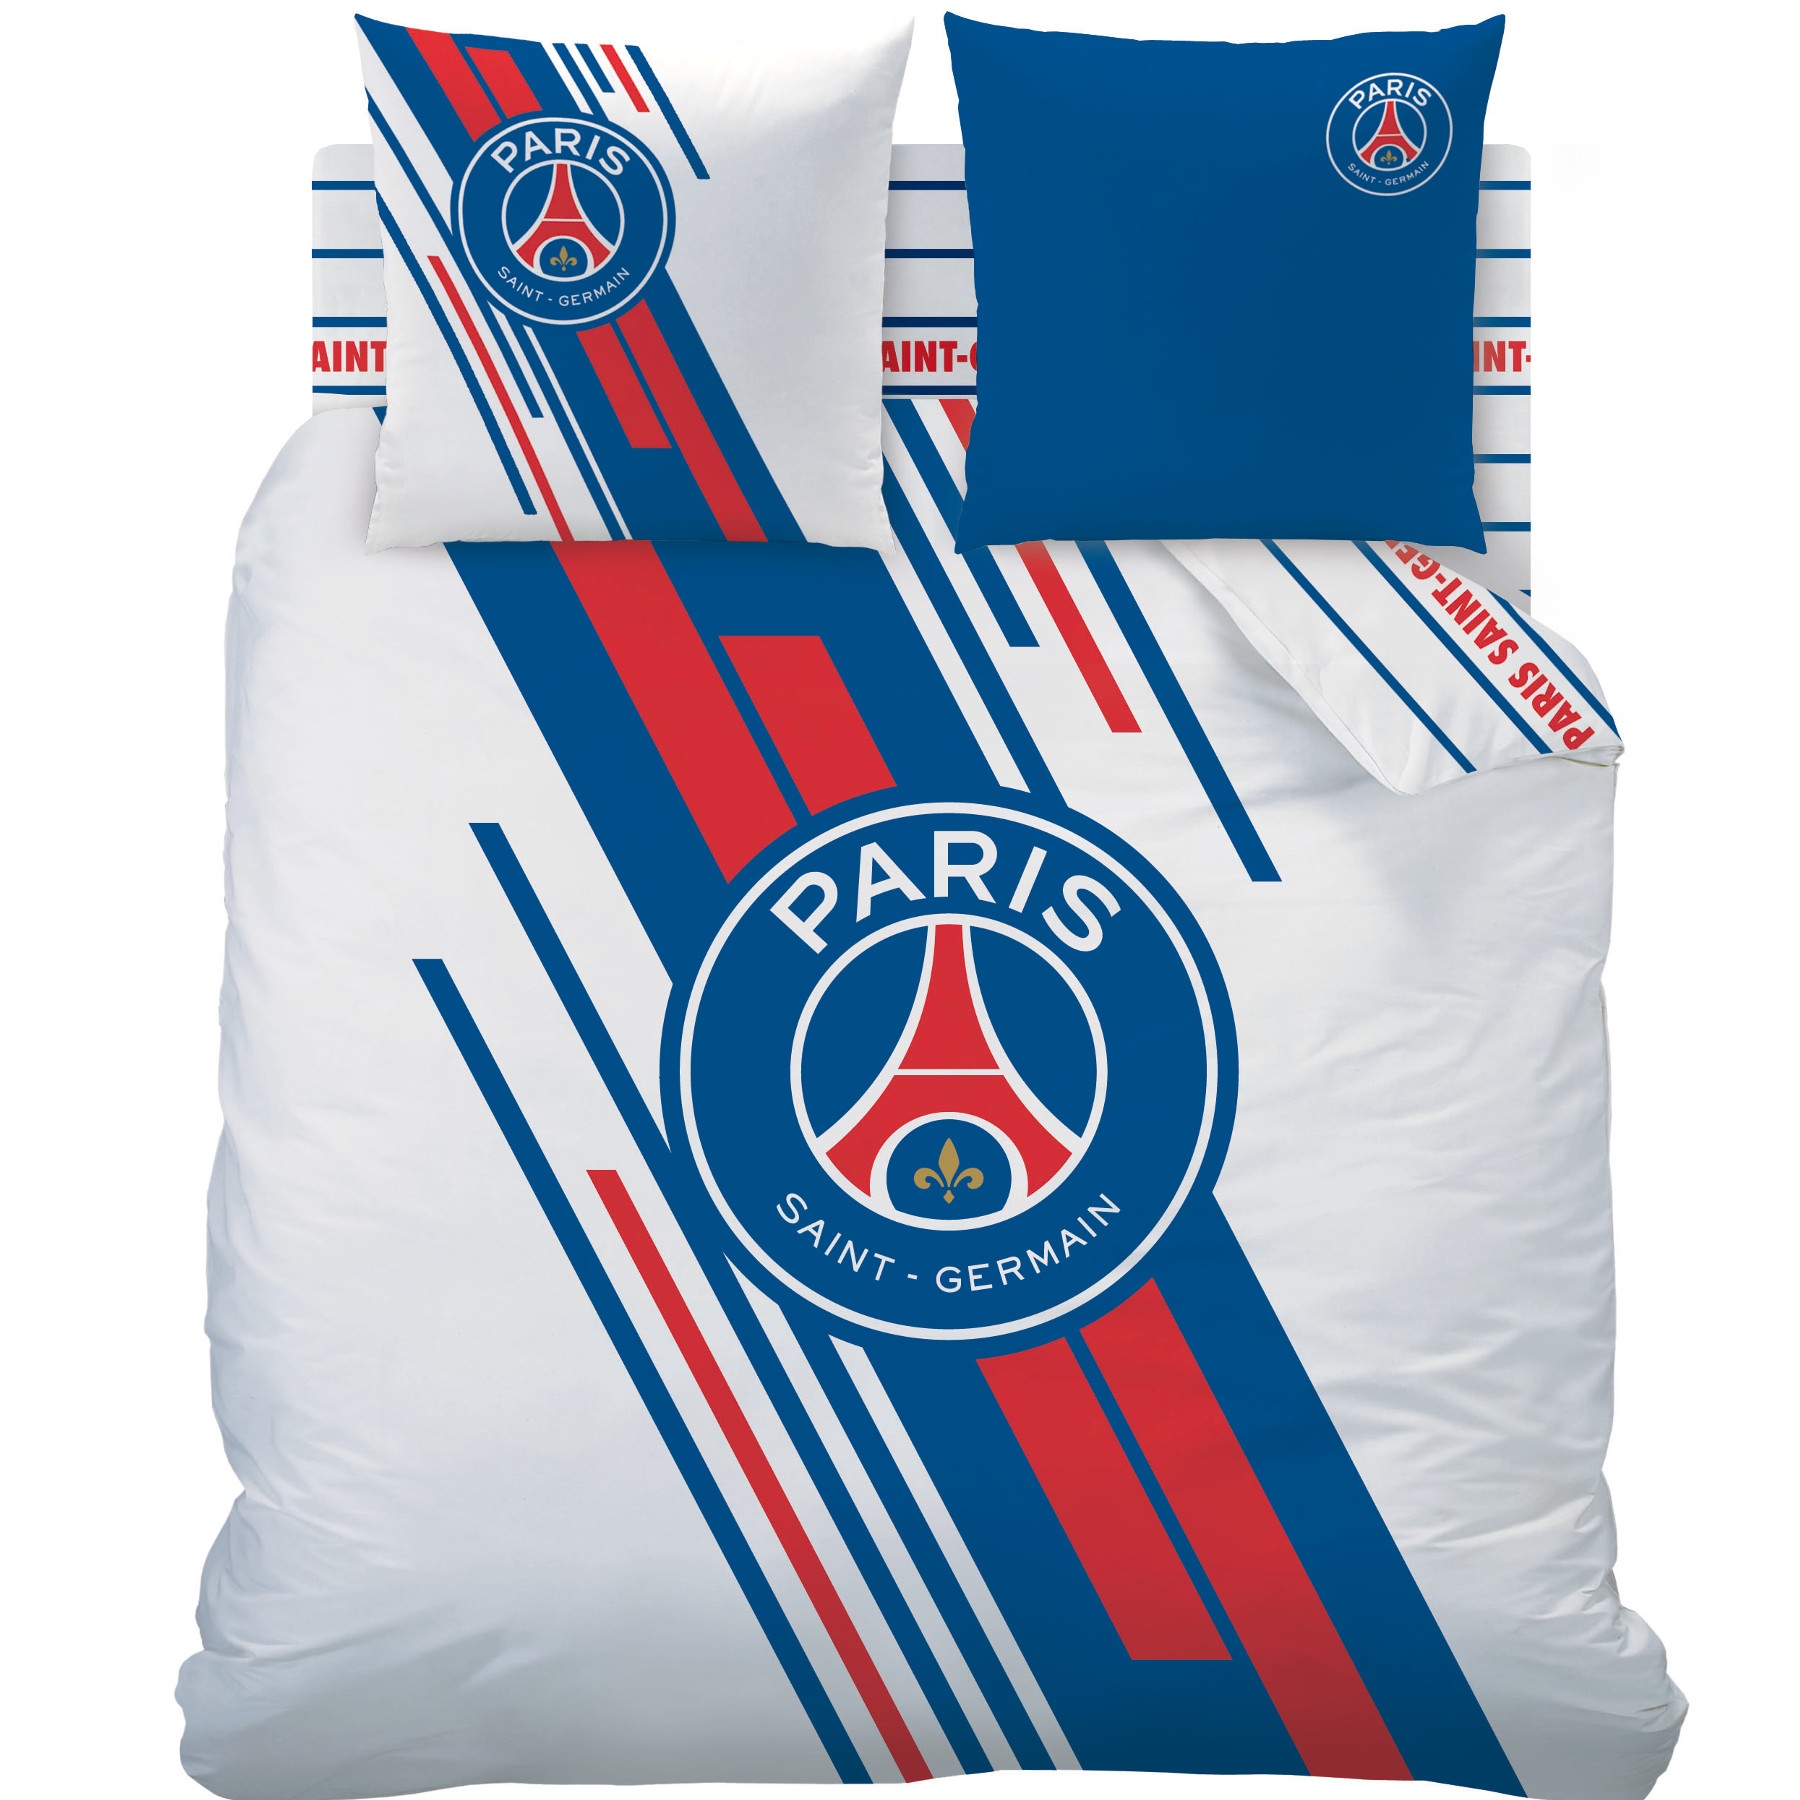 psg parure de lit housse de couette 200 x 200 cm psg stadium psg paris saint germain. Black Bedroom Furniture Sets. Home Design Ideas